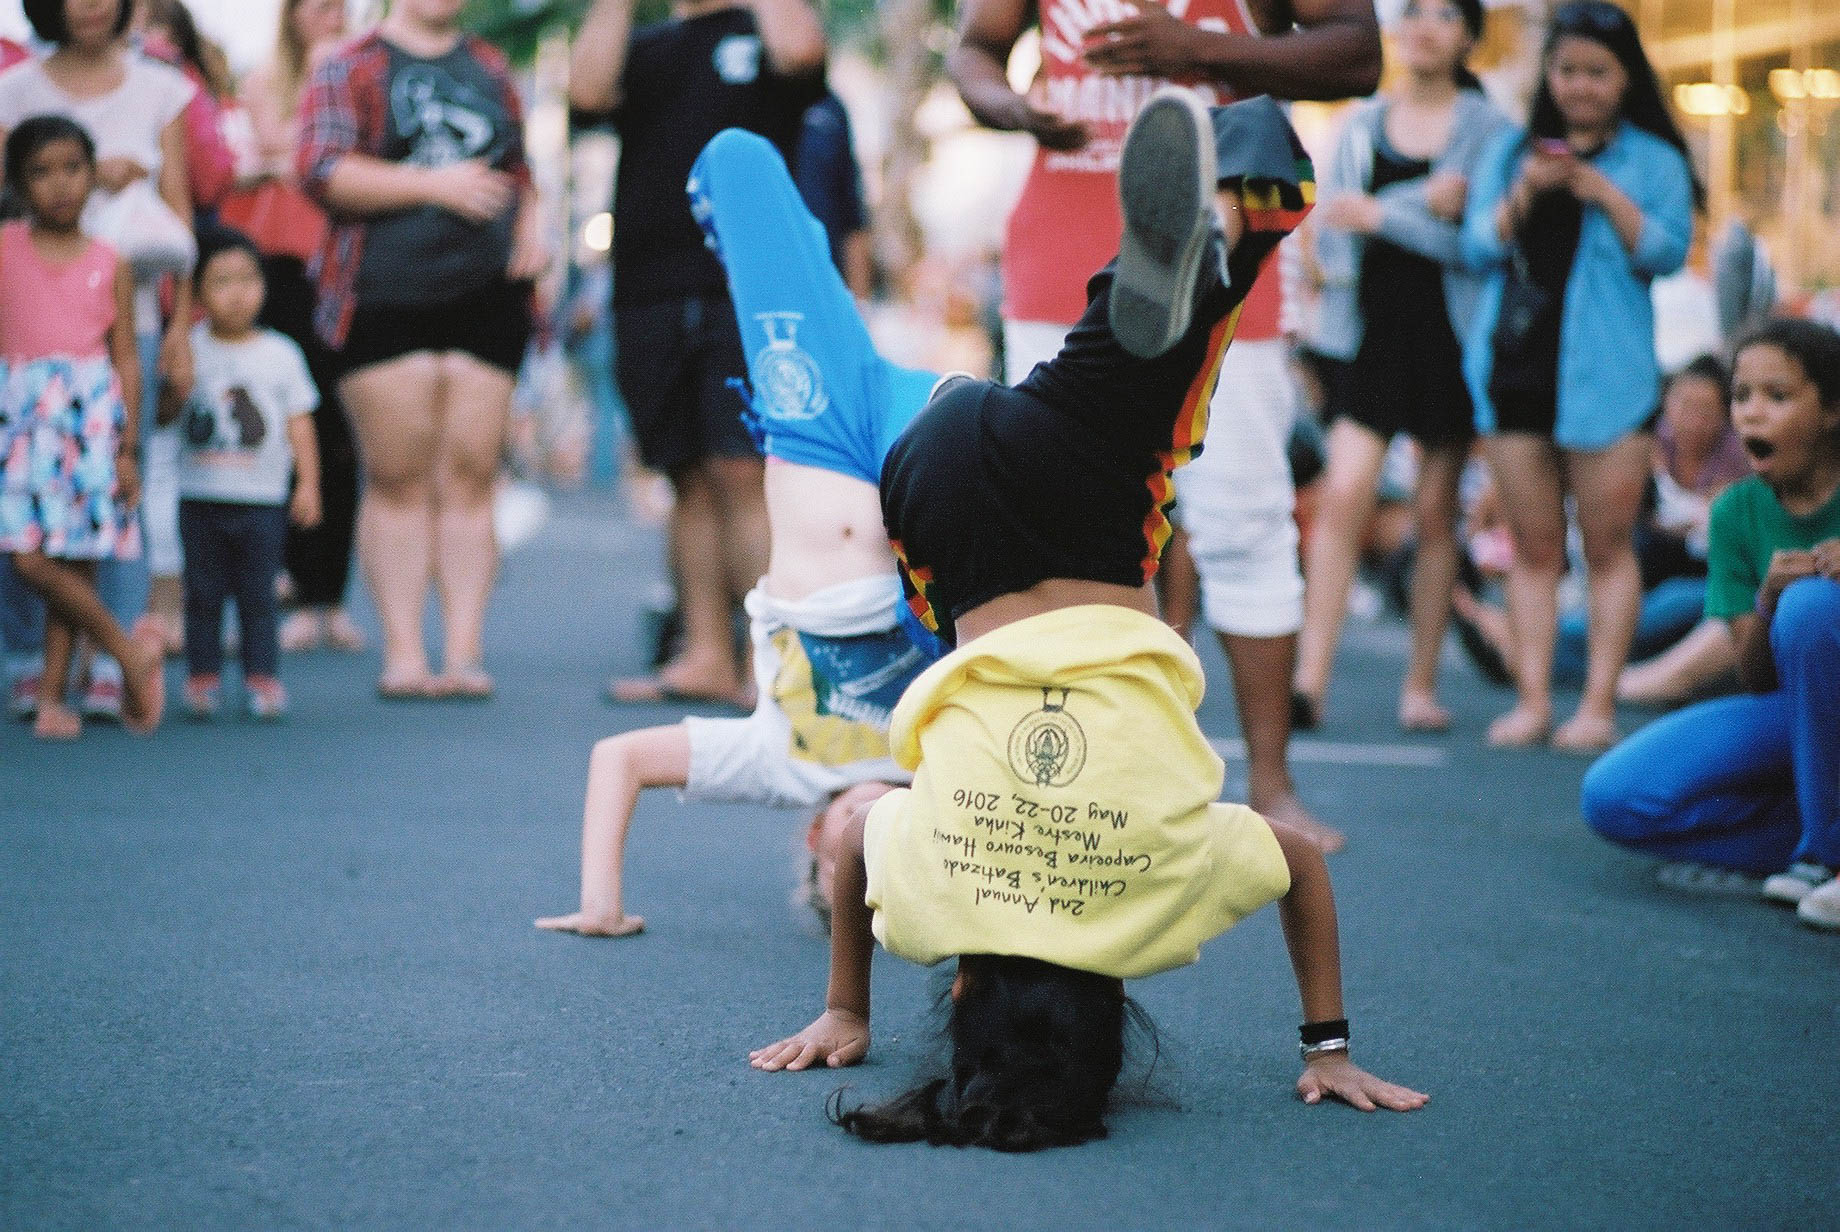 4Night Market Capoeira